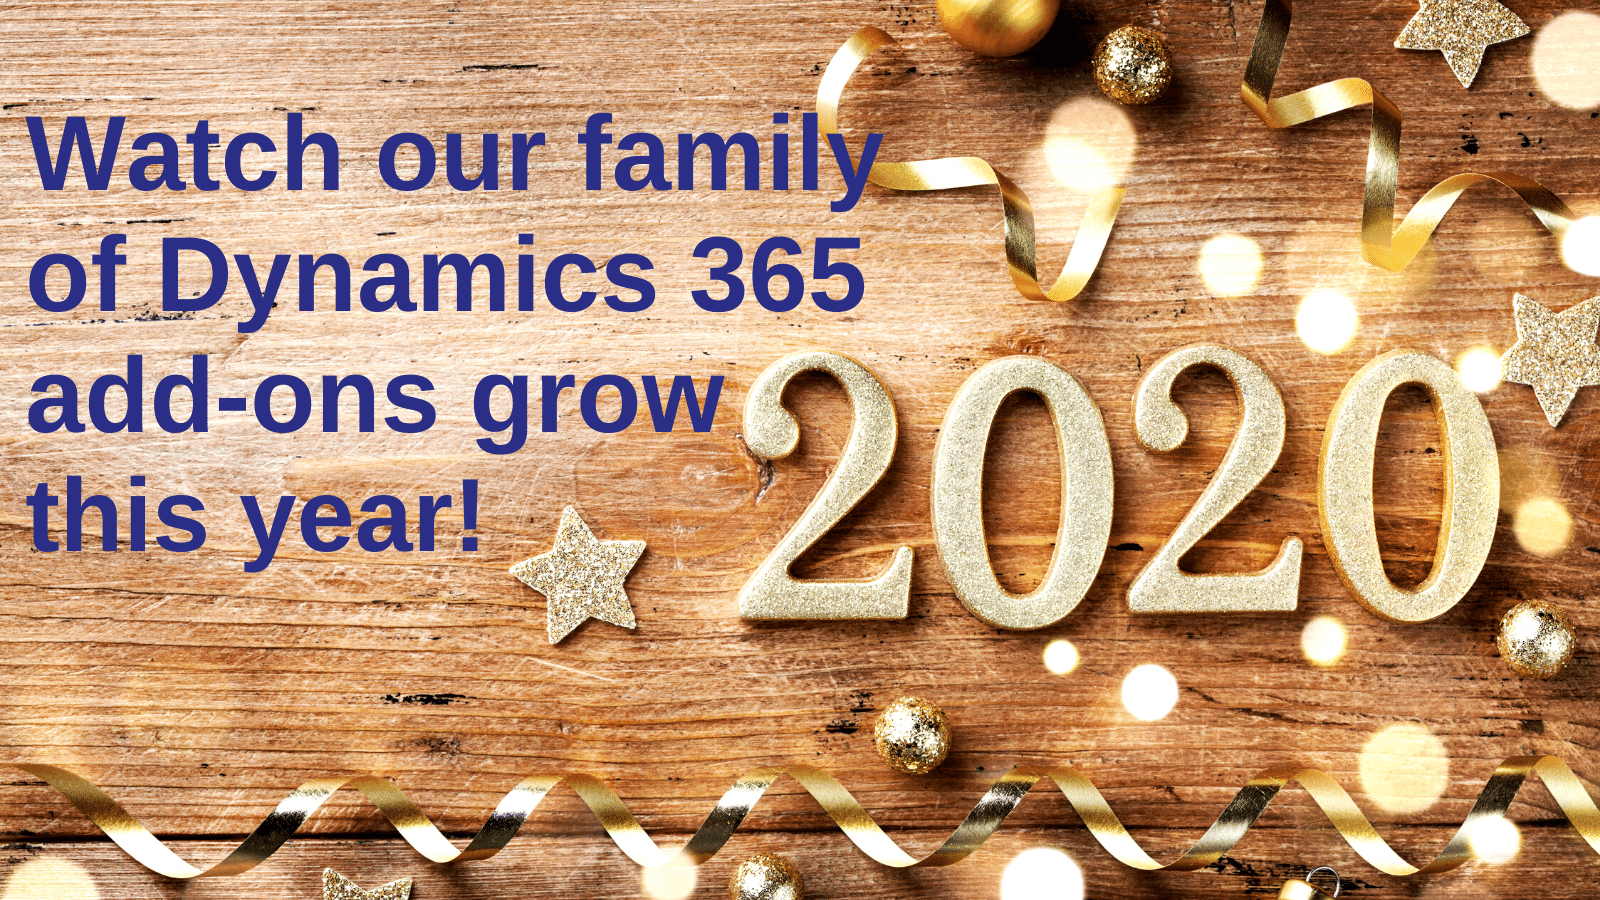 Watch our family of Dyn365 add-ons grow in 2020